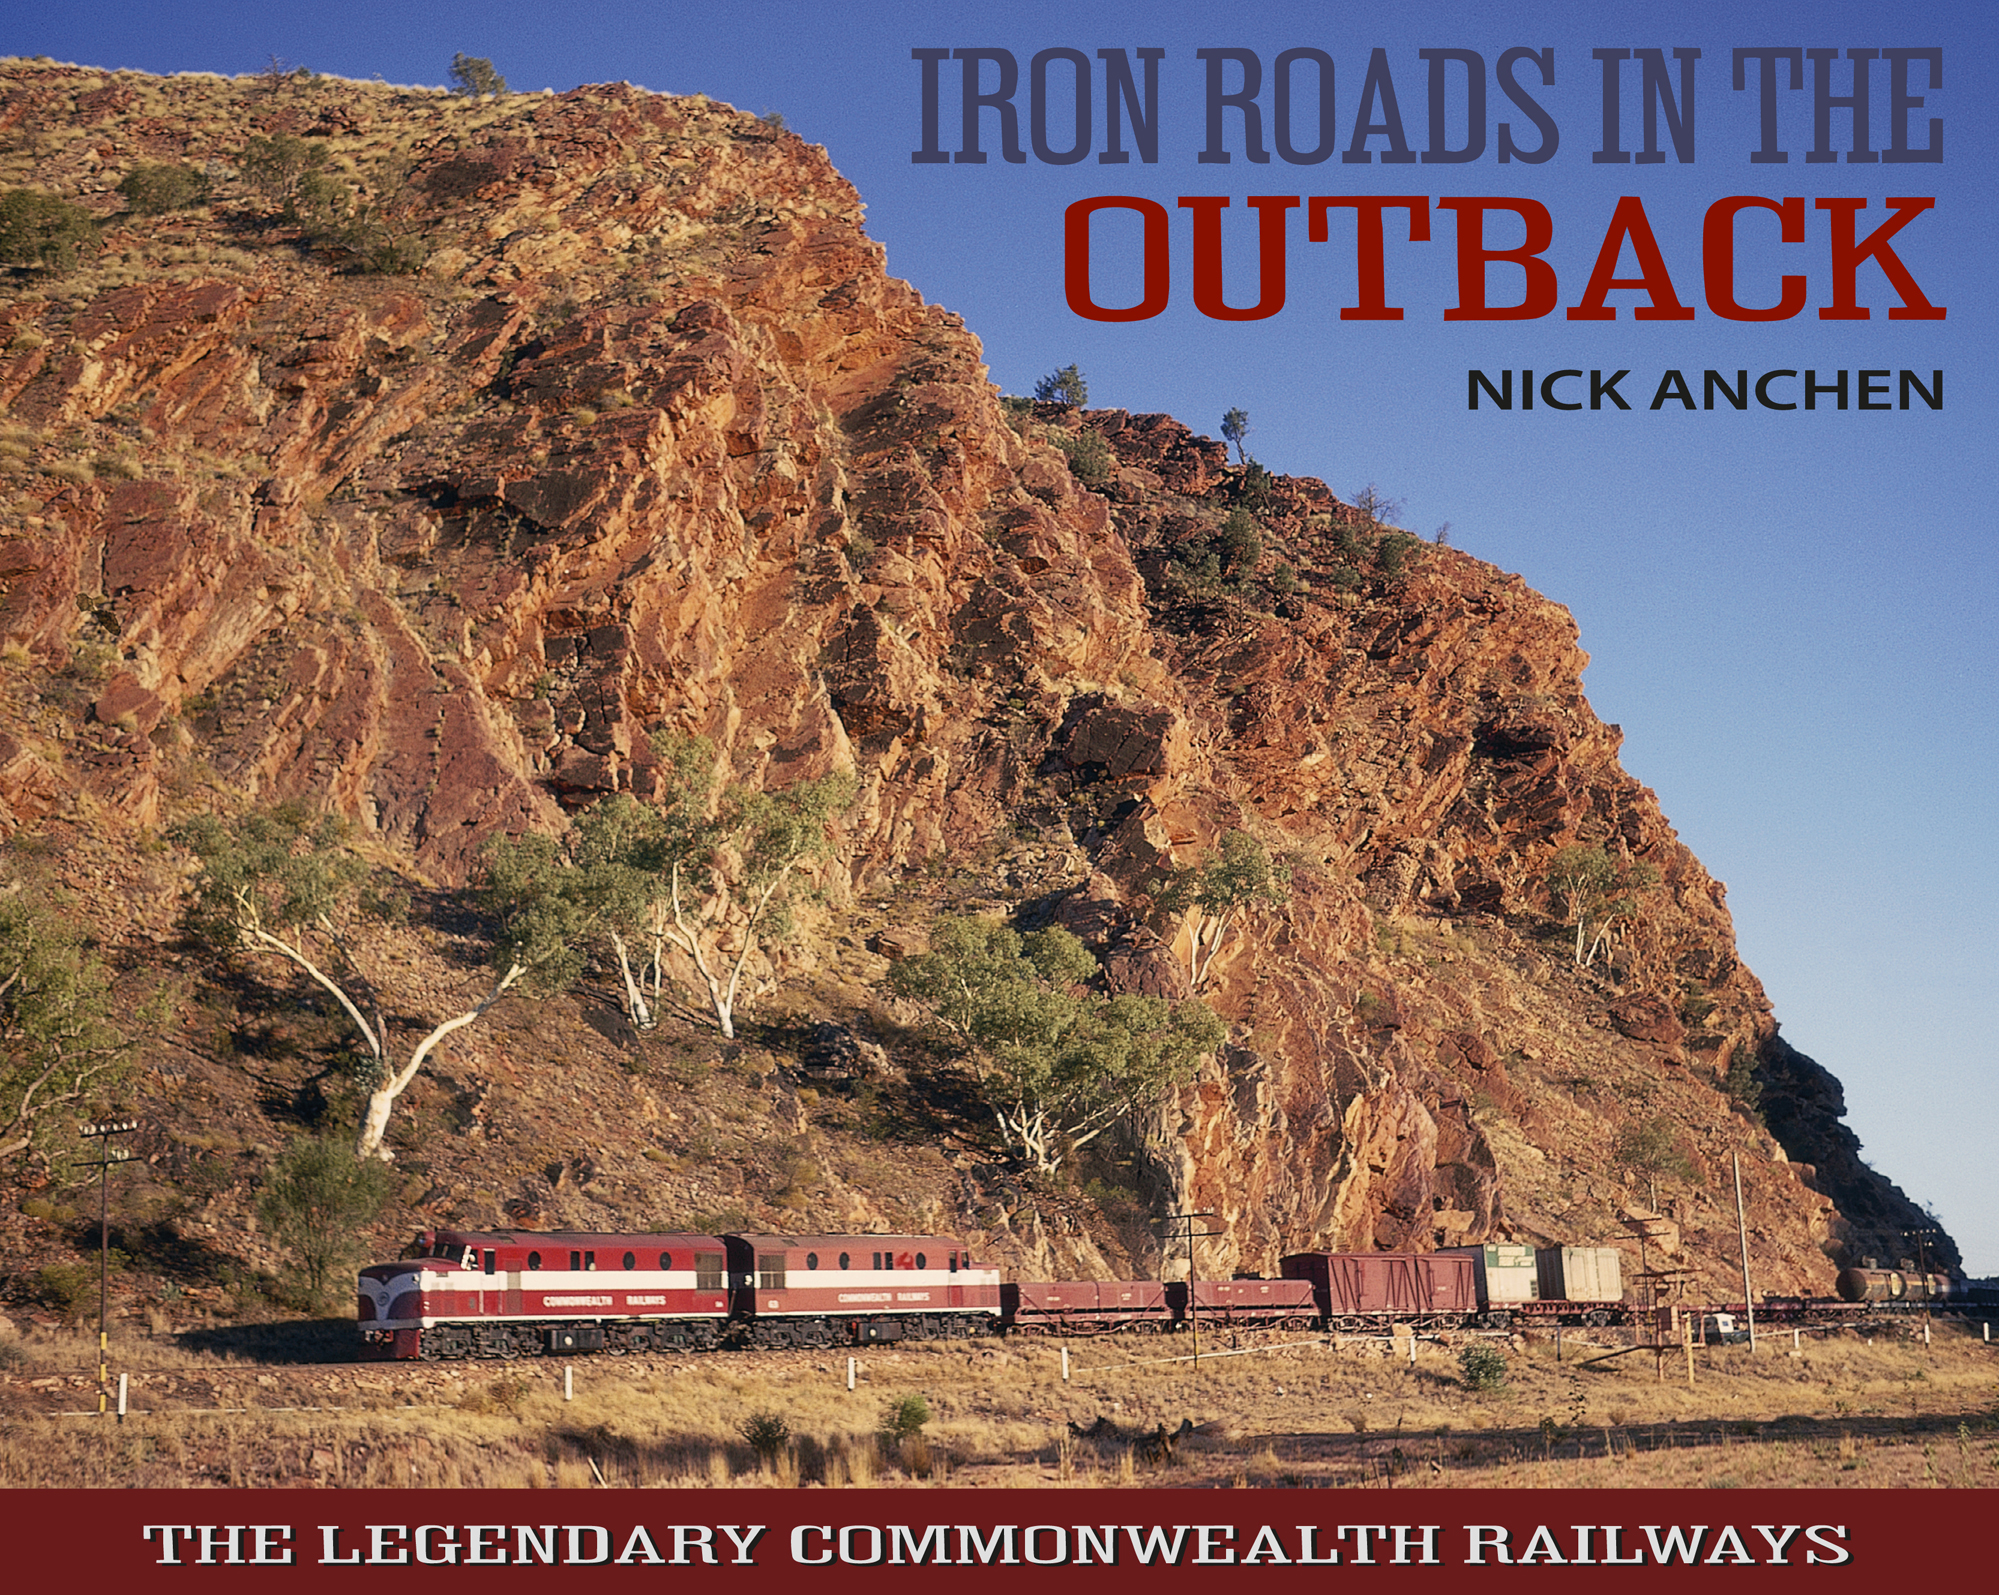 Iron Roads' of the Australian Outback